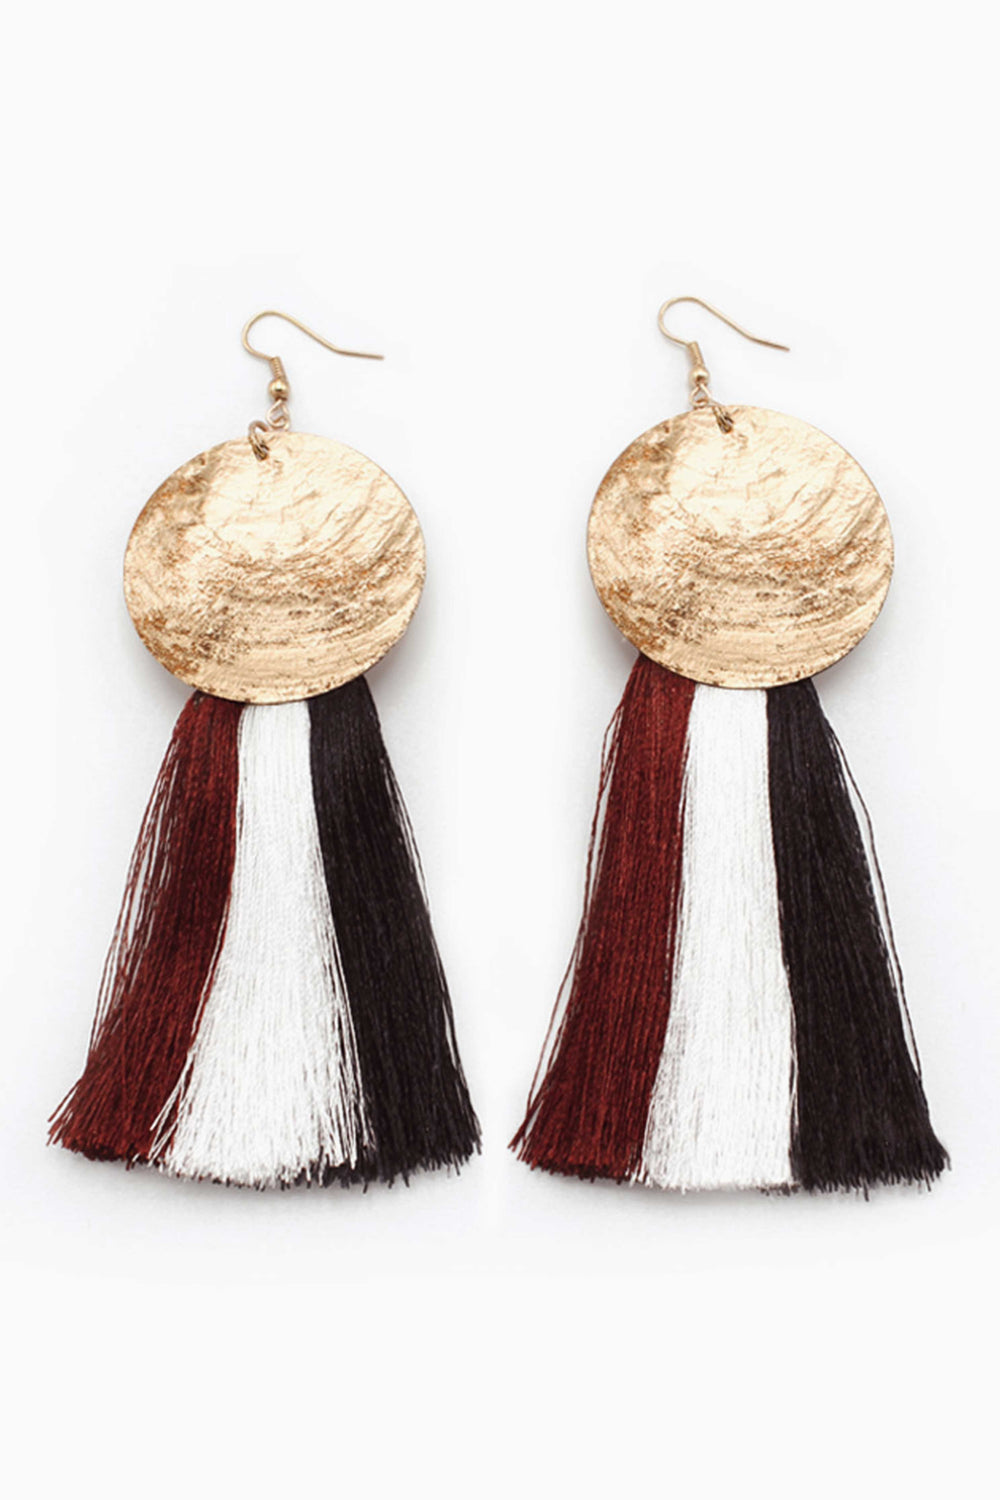 GYPSY SPELL EARRINGS | Women's Online Shopping | CHICLEFRIQUE  (4390874054745)